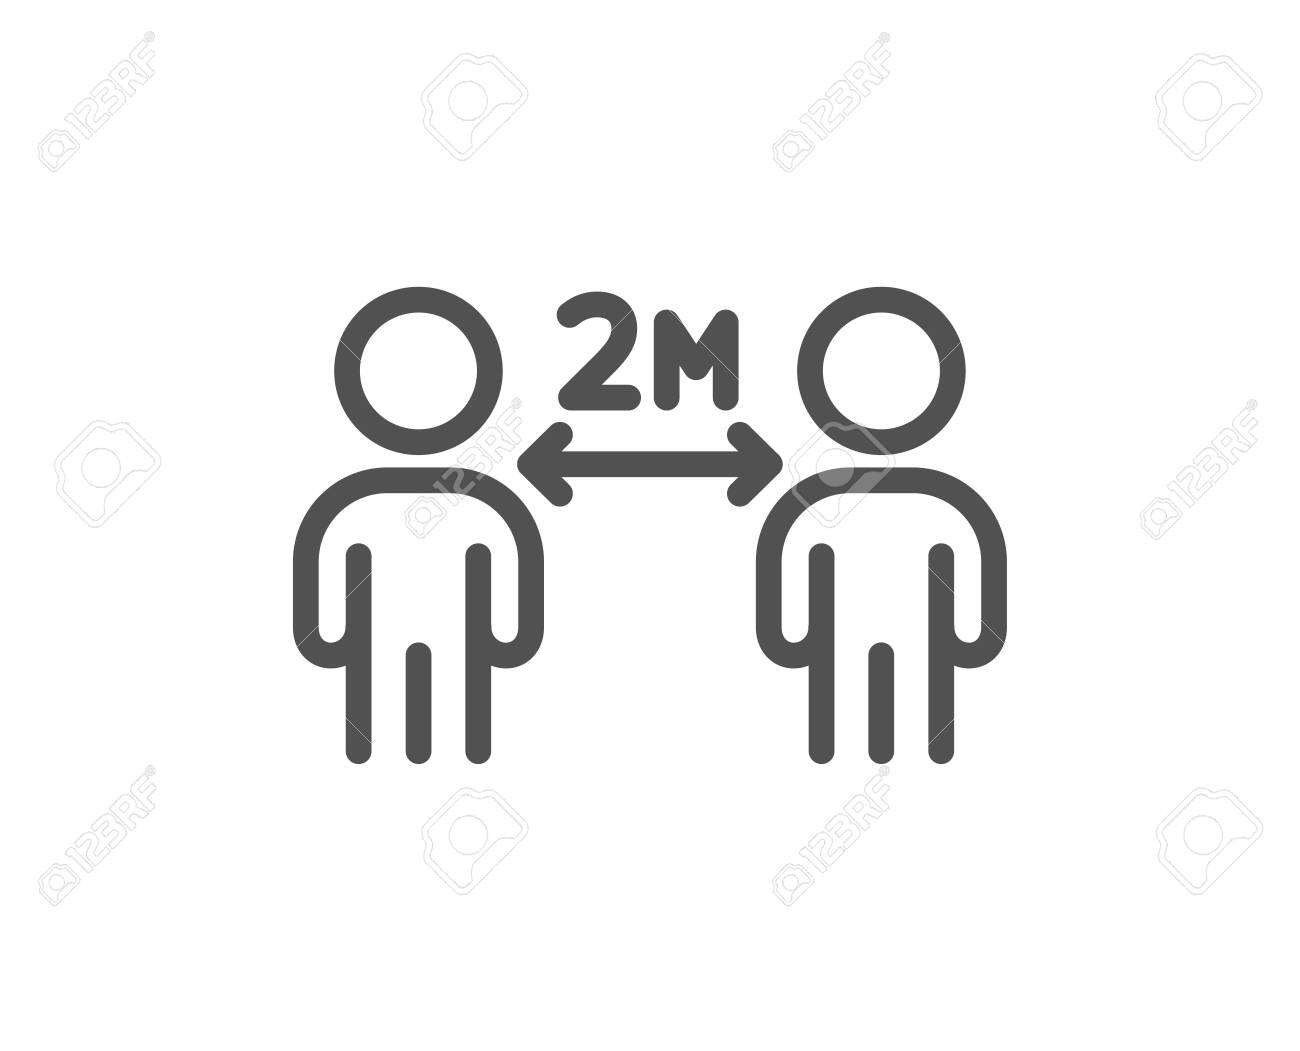 Social distancing line icon. 2 meters distance between sign. Coronavirus pandemic symbol. Quality design element. Editable stroke. Linear style social distancing icon. Vector - 143735123